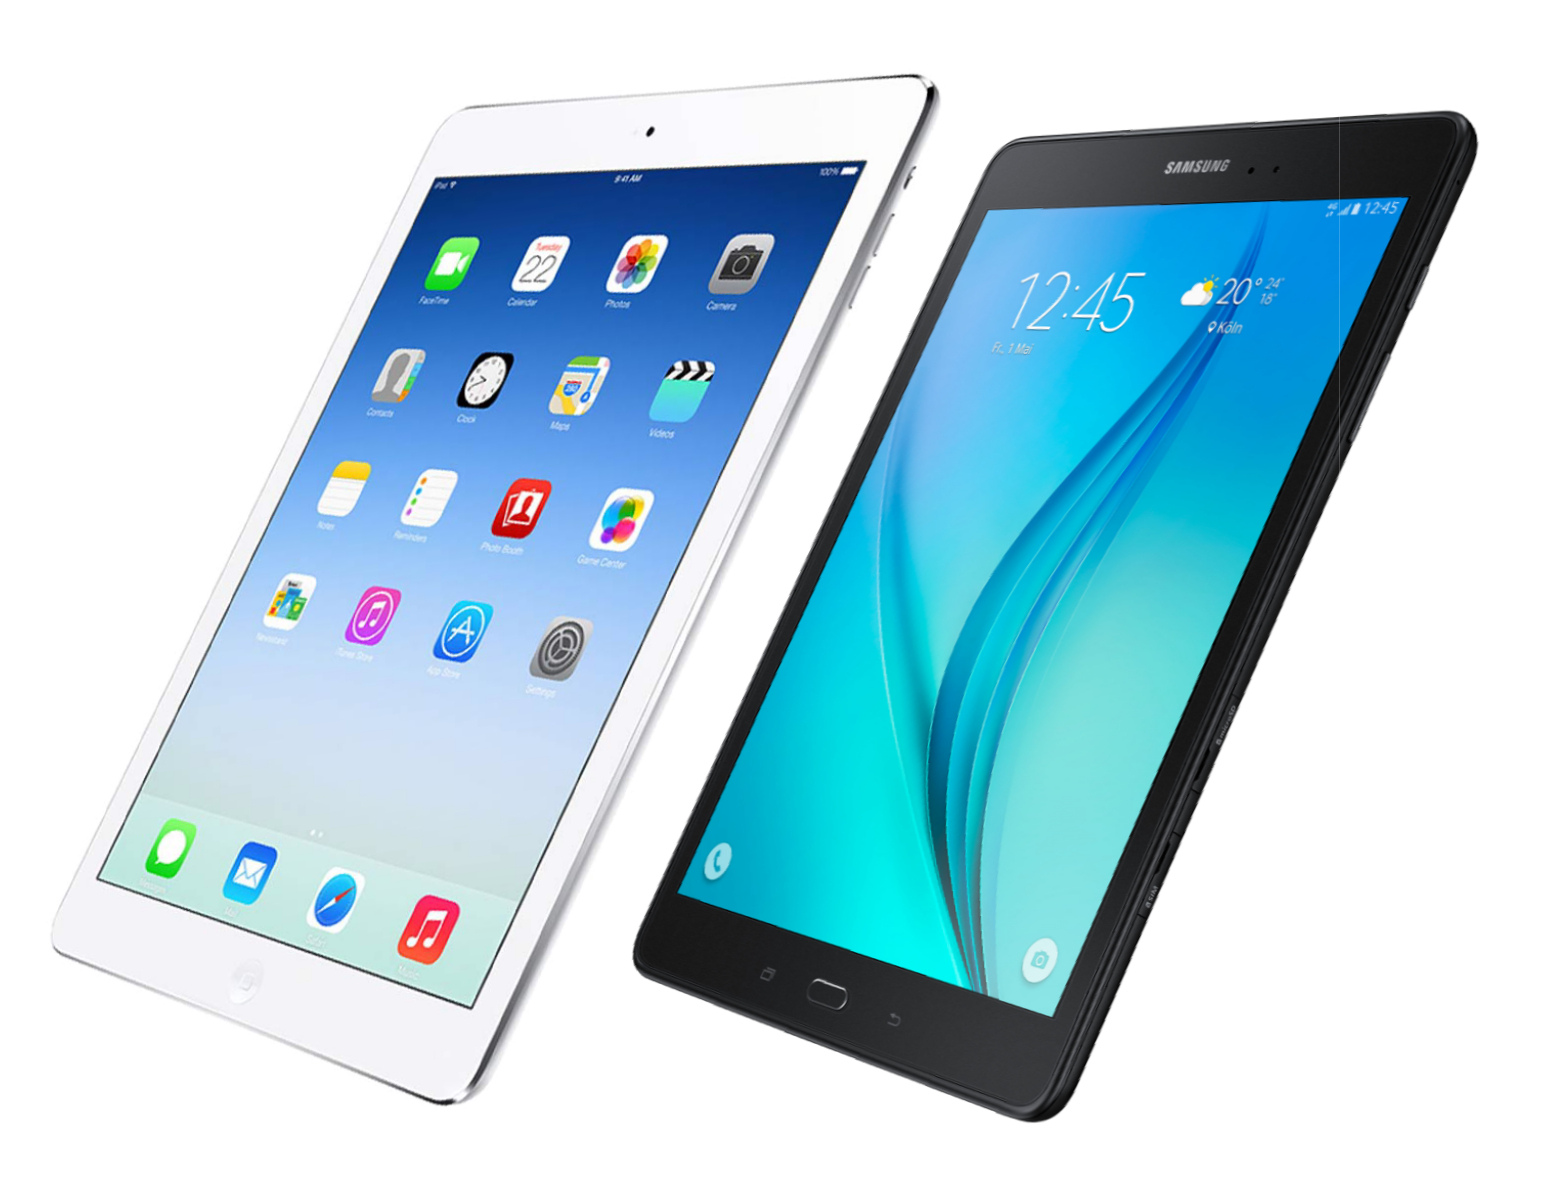 Samsung Galaxy Tab S2 97 Vs Apple Ipad Air 2 16gb Silver Angled View